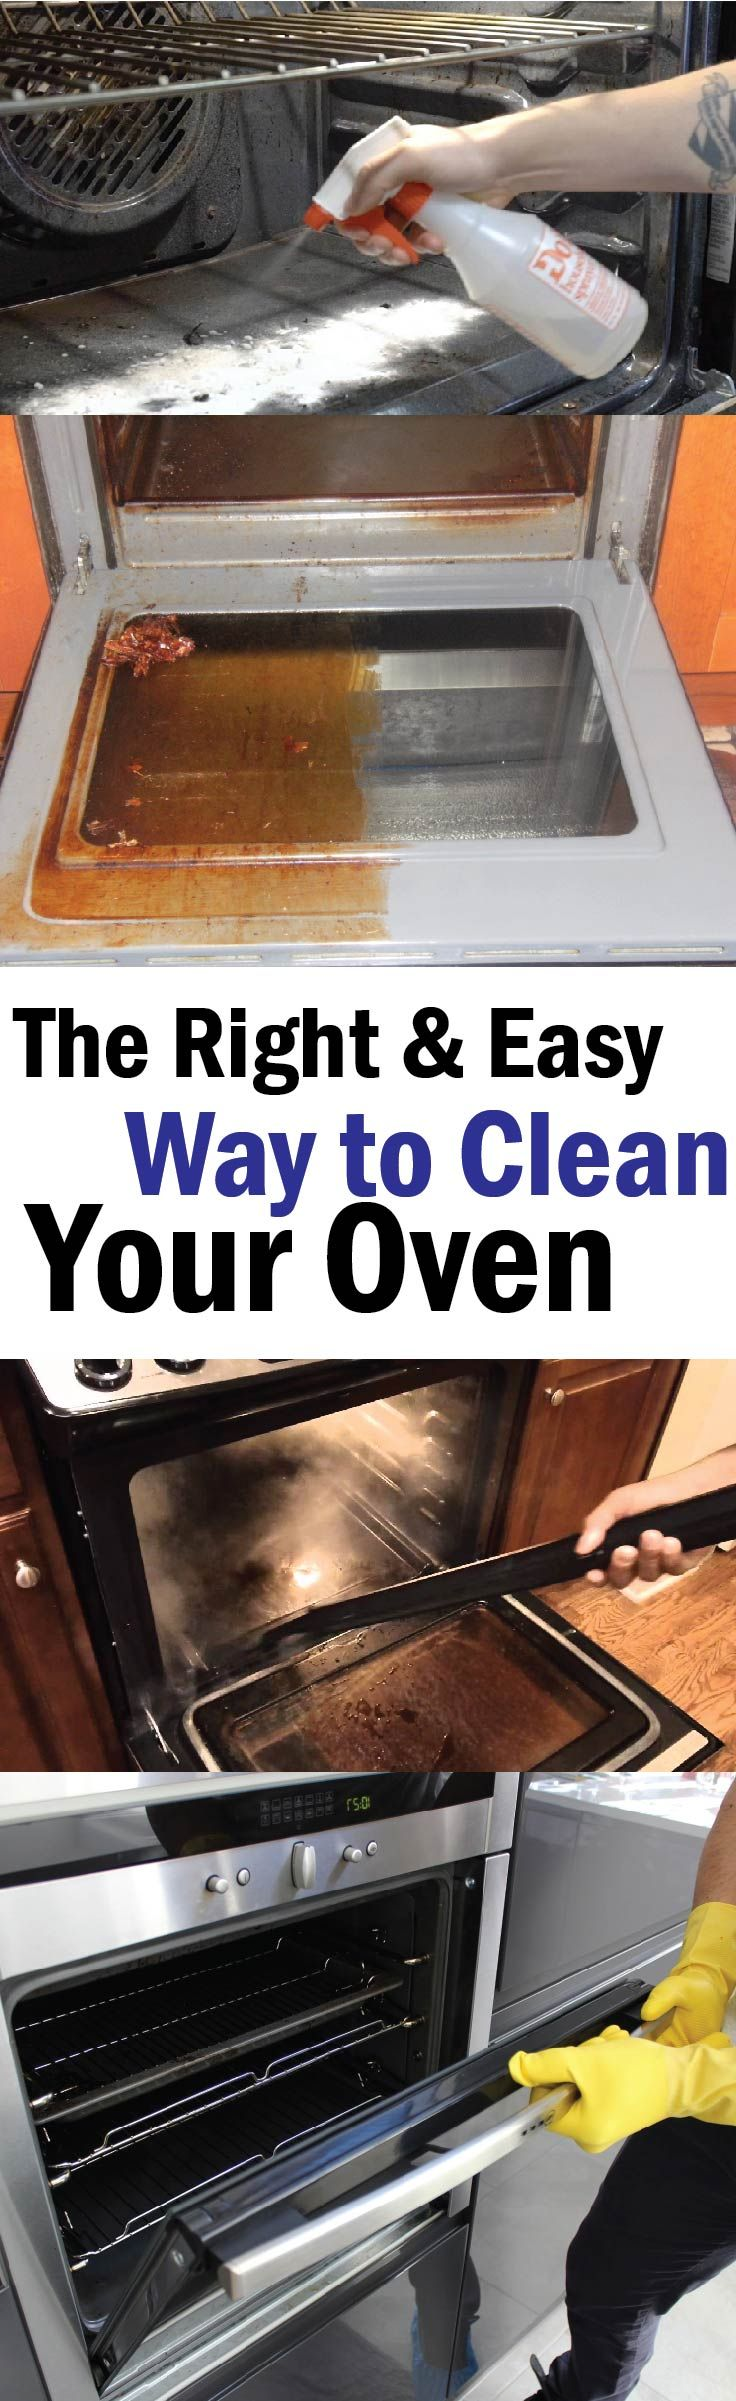 Best 25 oven cleaning tips ideas on pinterest clean oven oven best 25 oven cleaning tips ideas on pinterest clean oven oven cleaning products and easy oven cleaning solutioingenieria Gallery